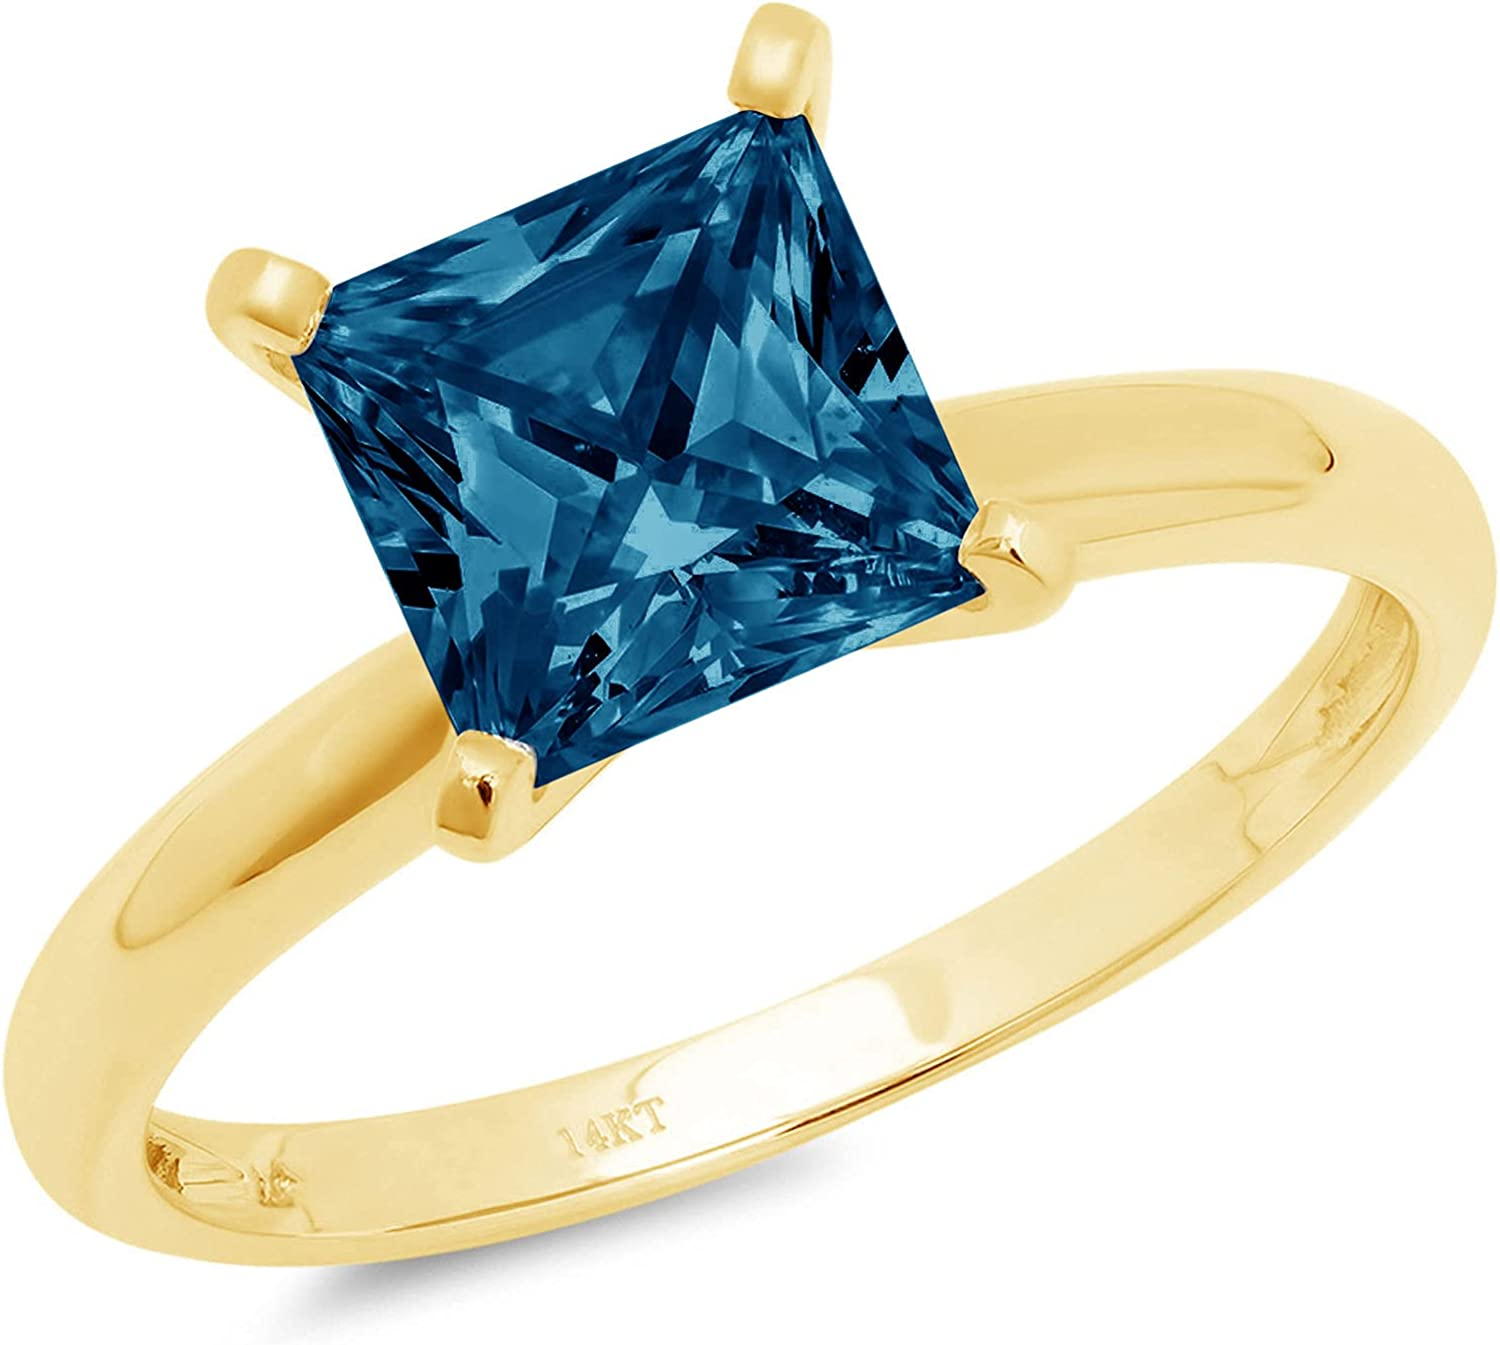 2.4ct Princess Cut Solitaire Special price Natural Weekly update VVS1 Blue Royal 4 Excellent